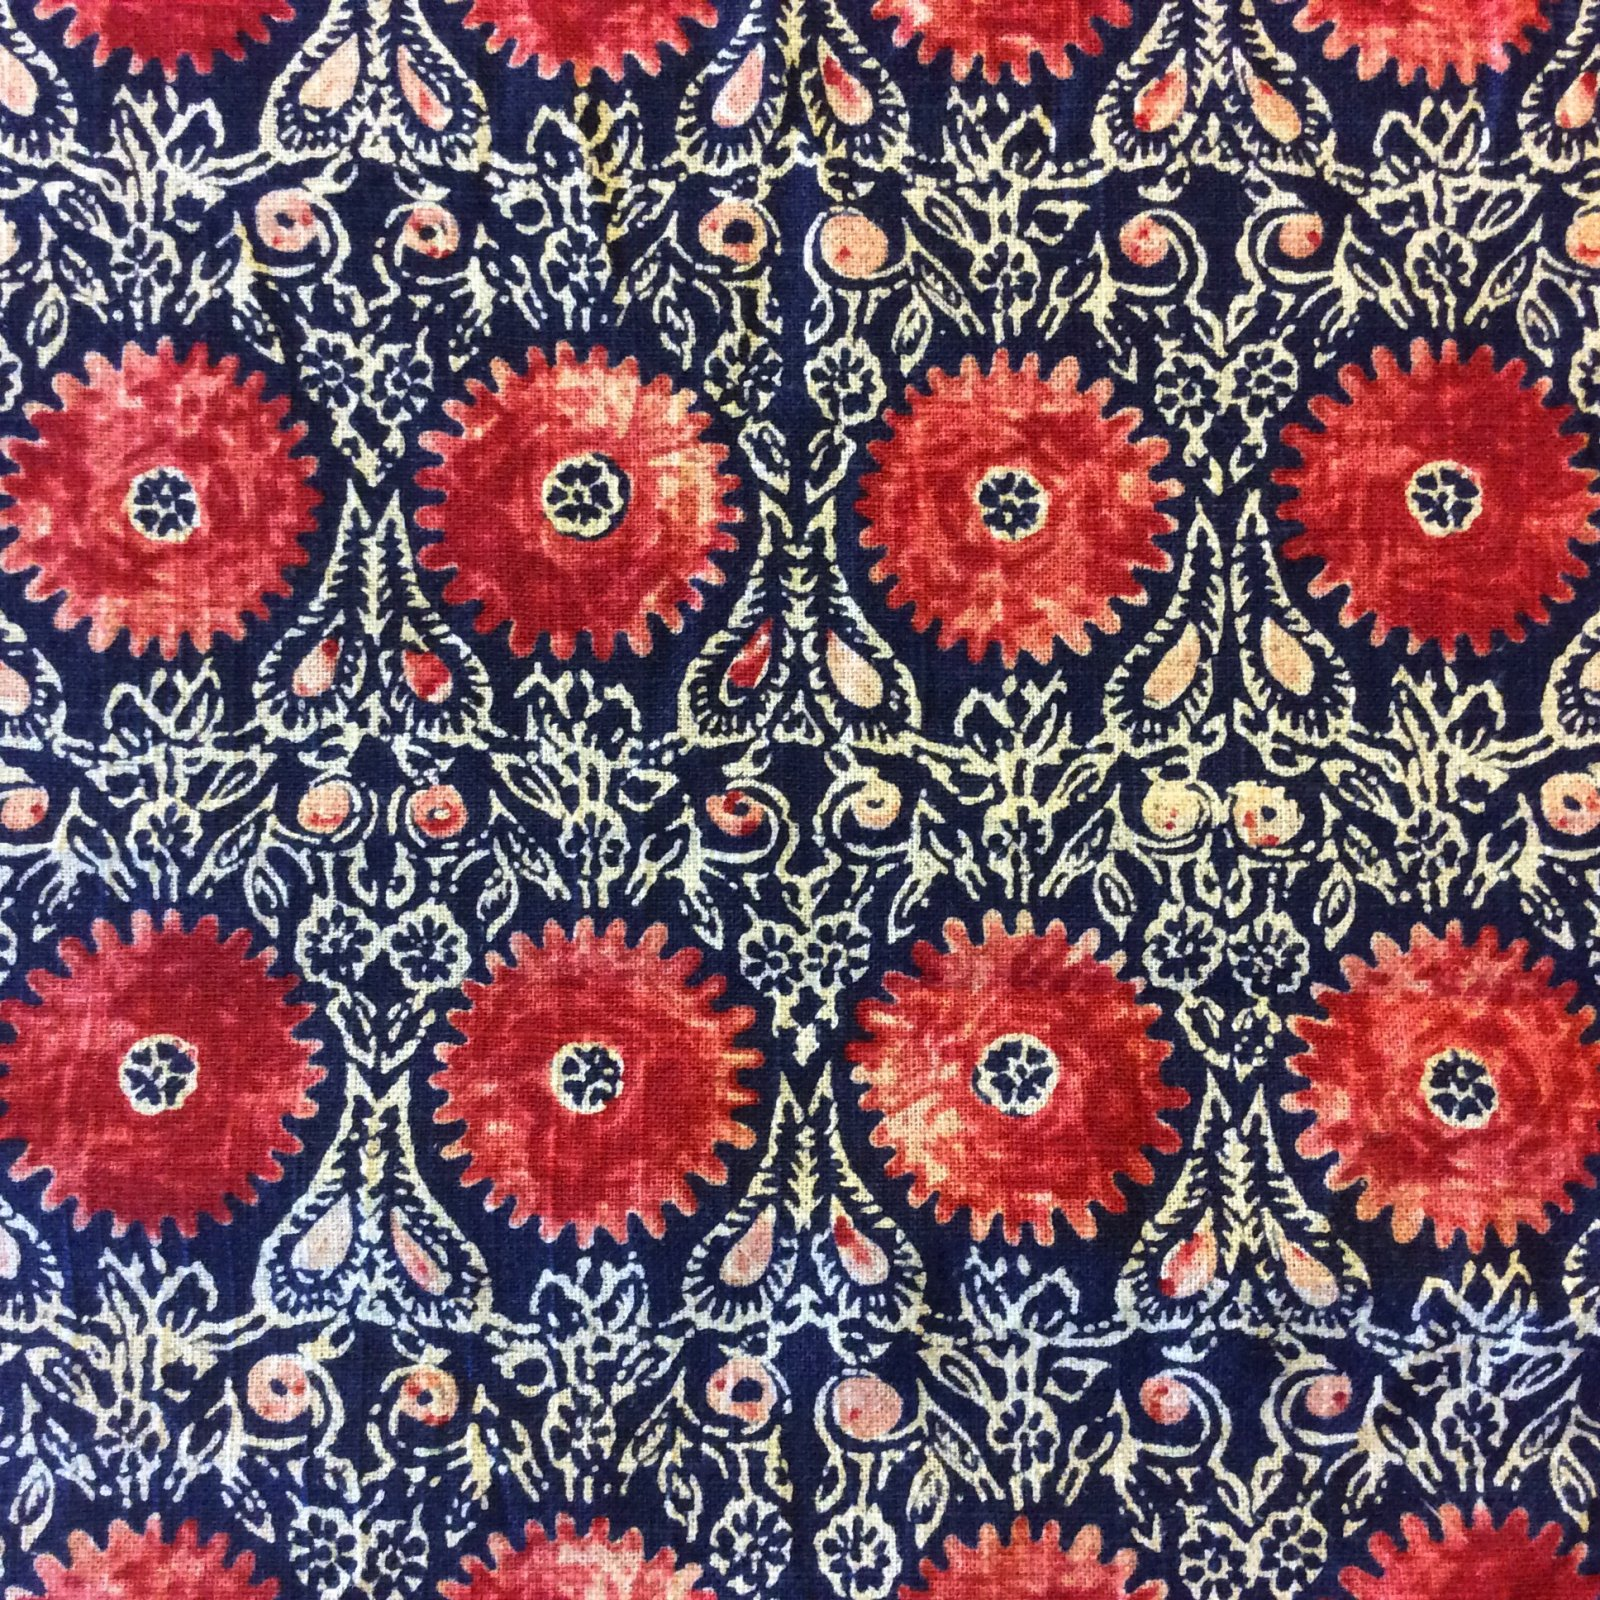 DI08 Navy Blue & Red Suzani Medallion Geometric Geo Drapery Home Decor Fabric